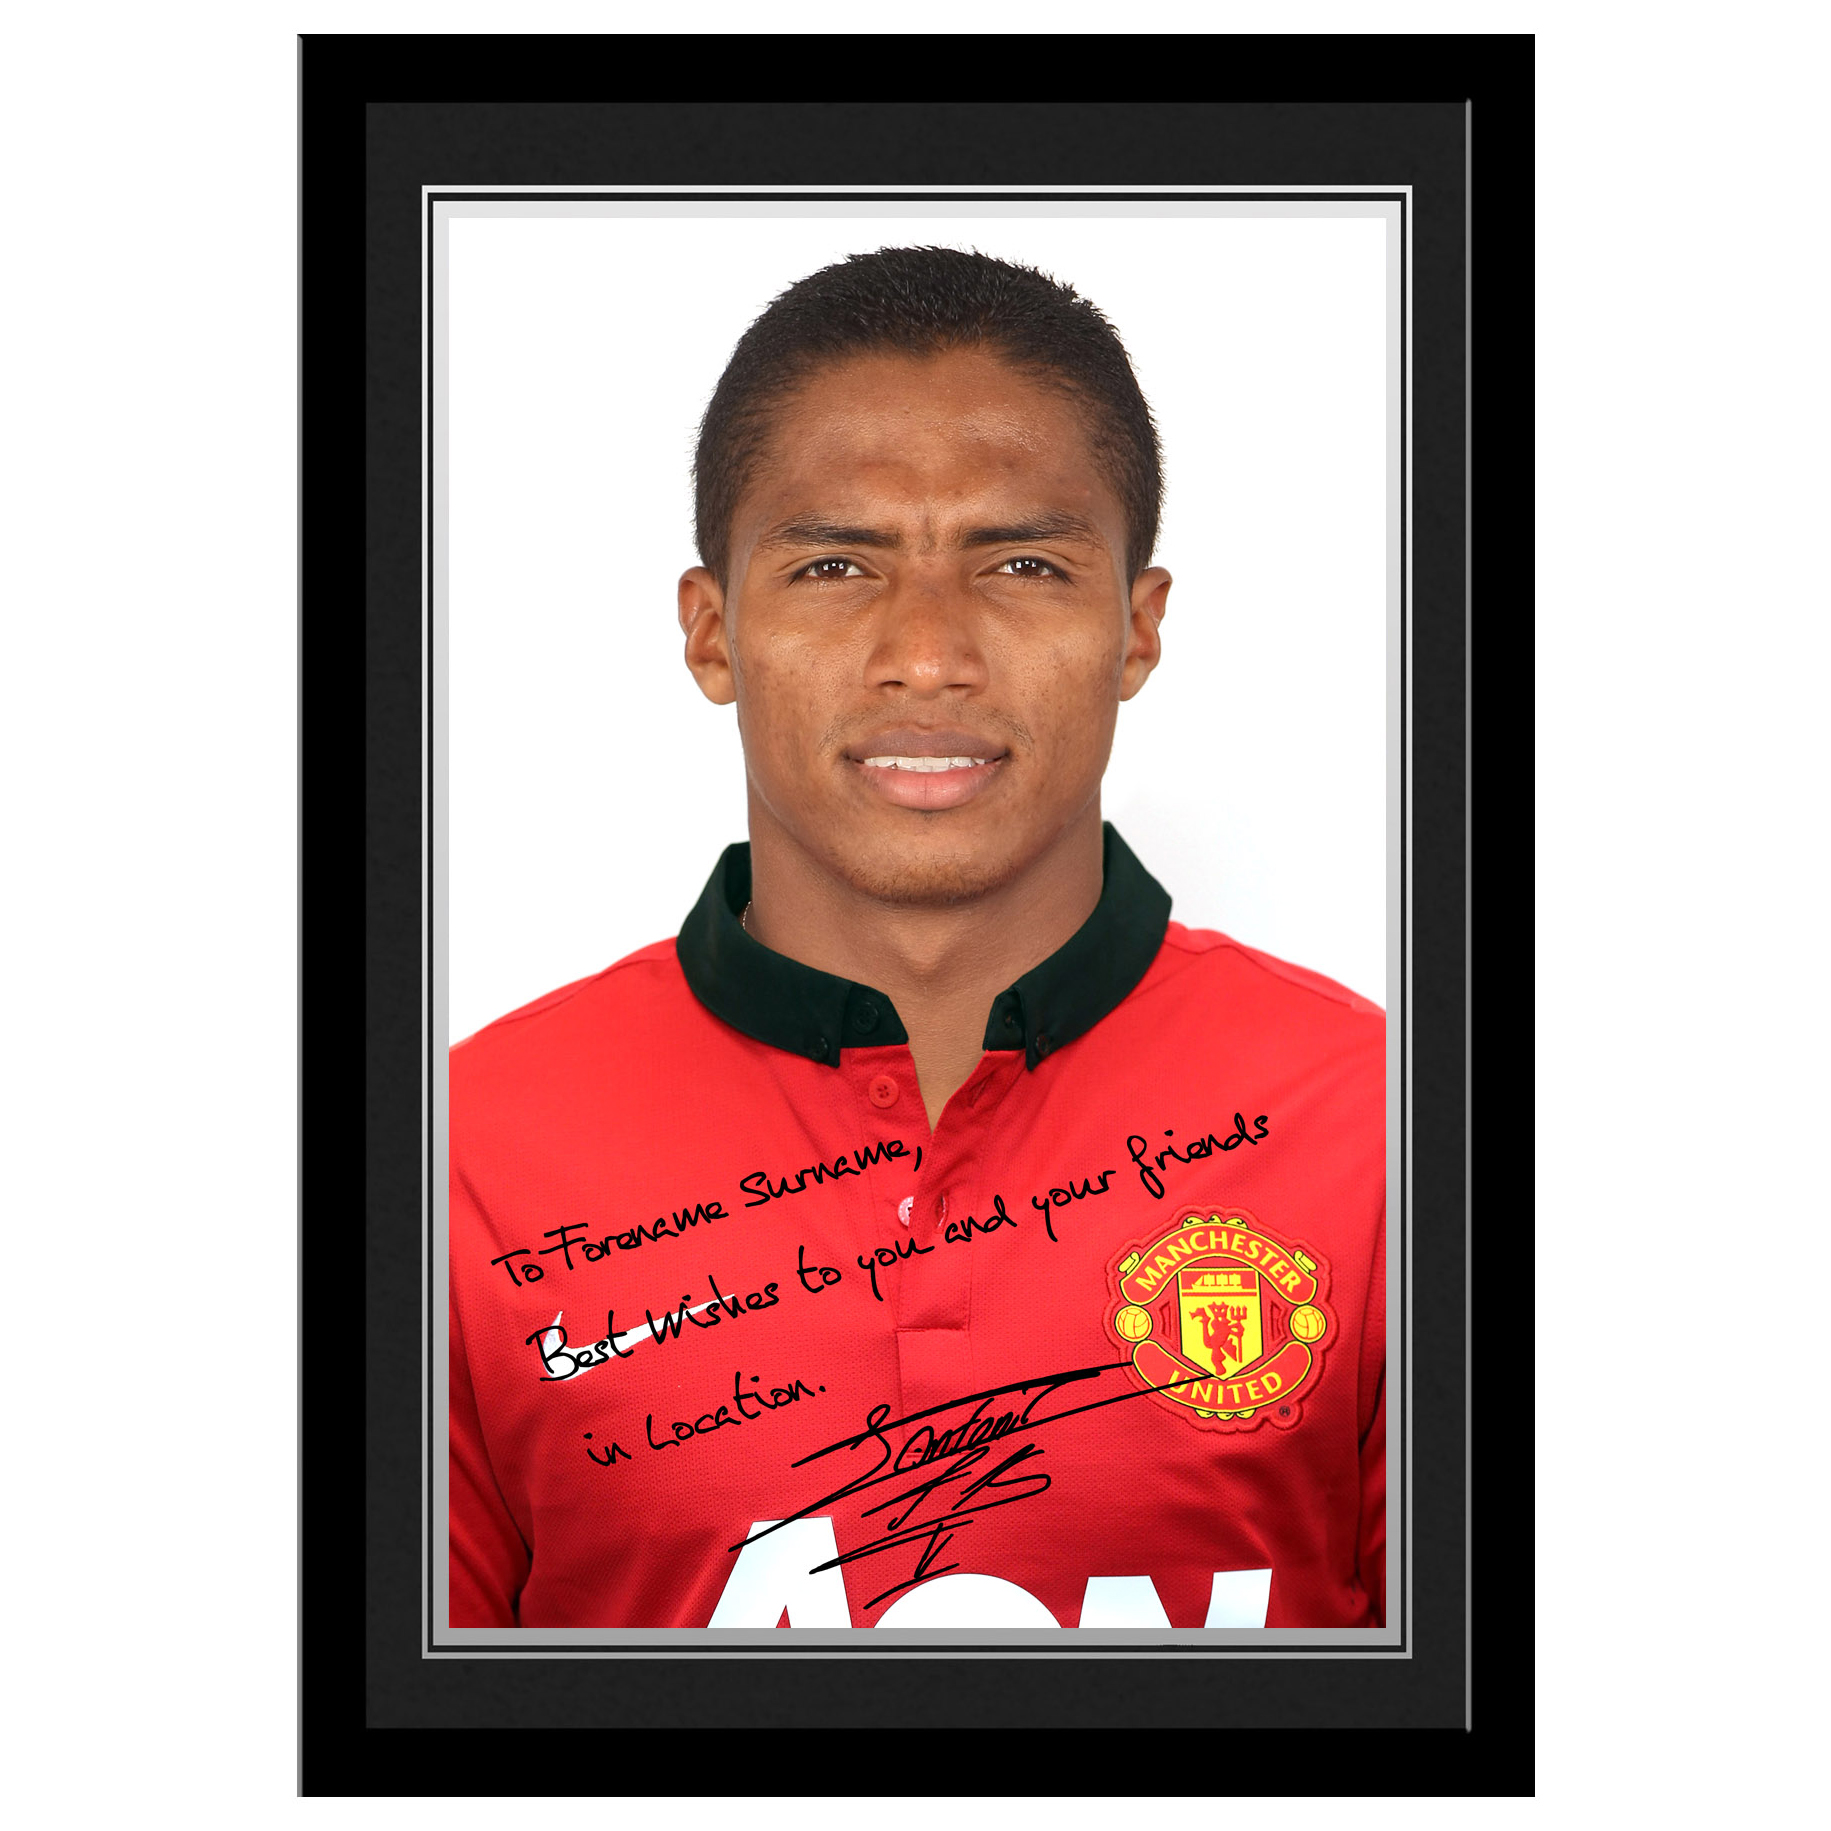 Manchester United Personalised Signature Photo Framed - Valencia